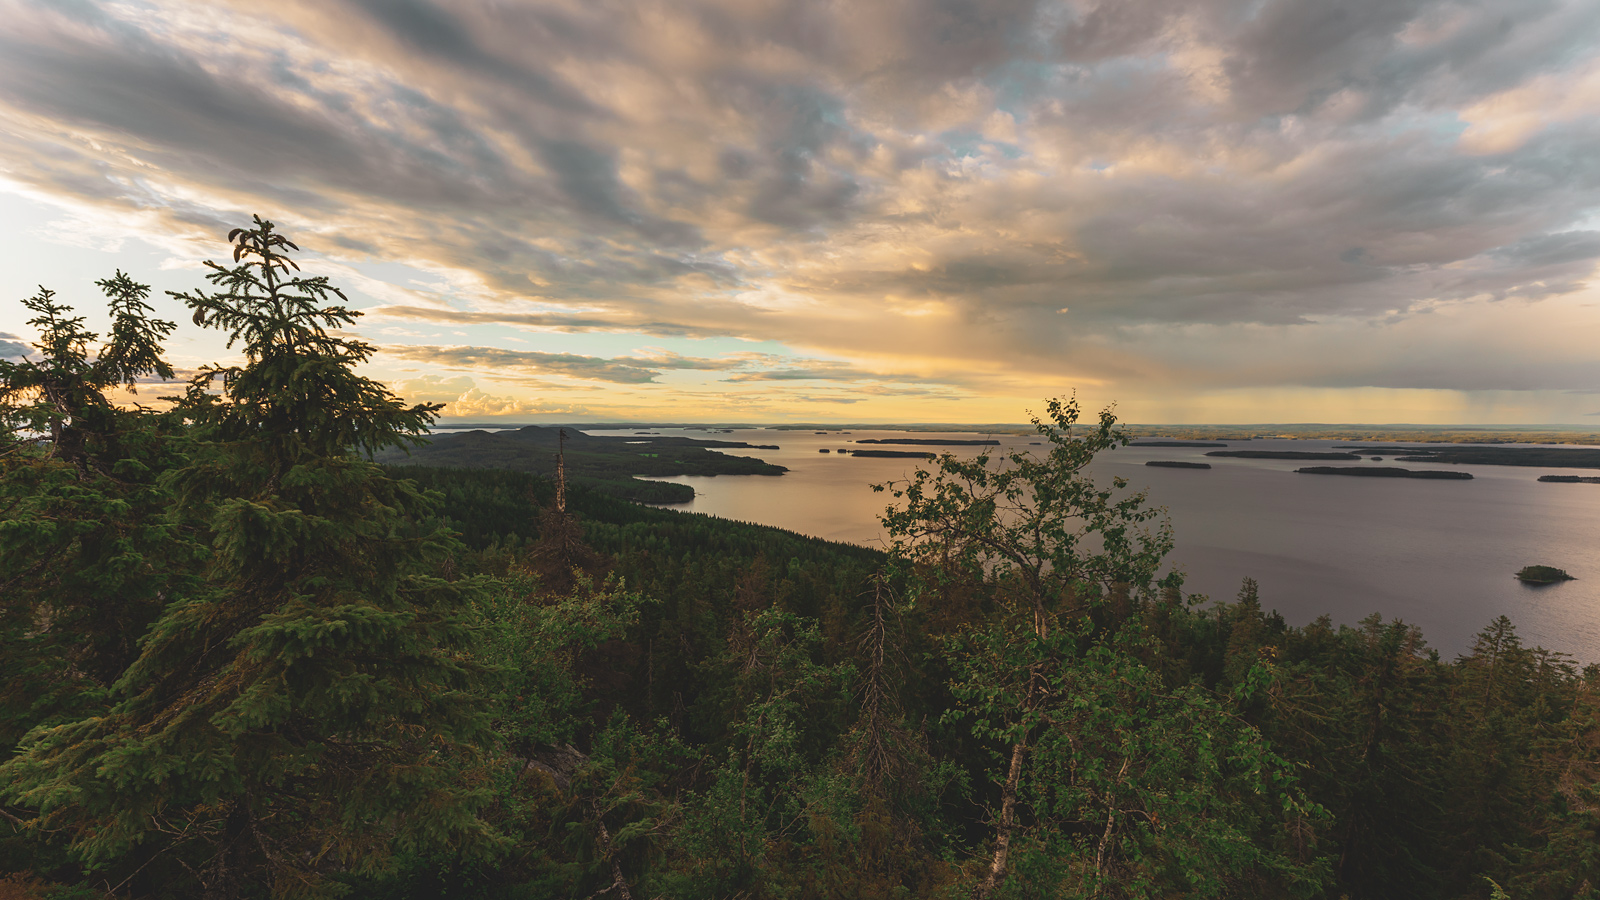 Night colors of Koli National Park and Lake Pielinen